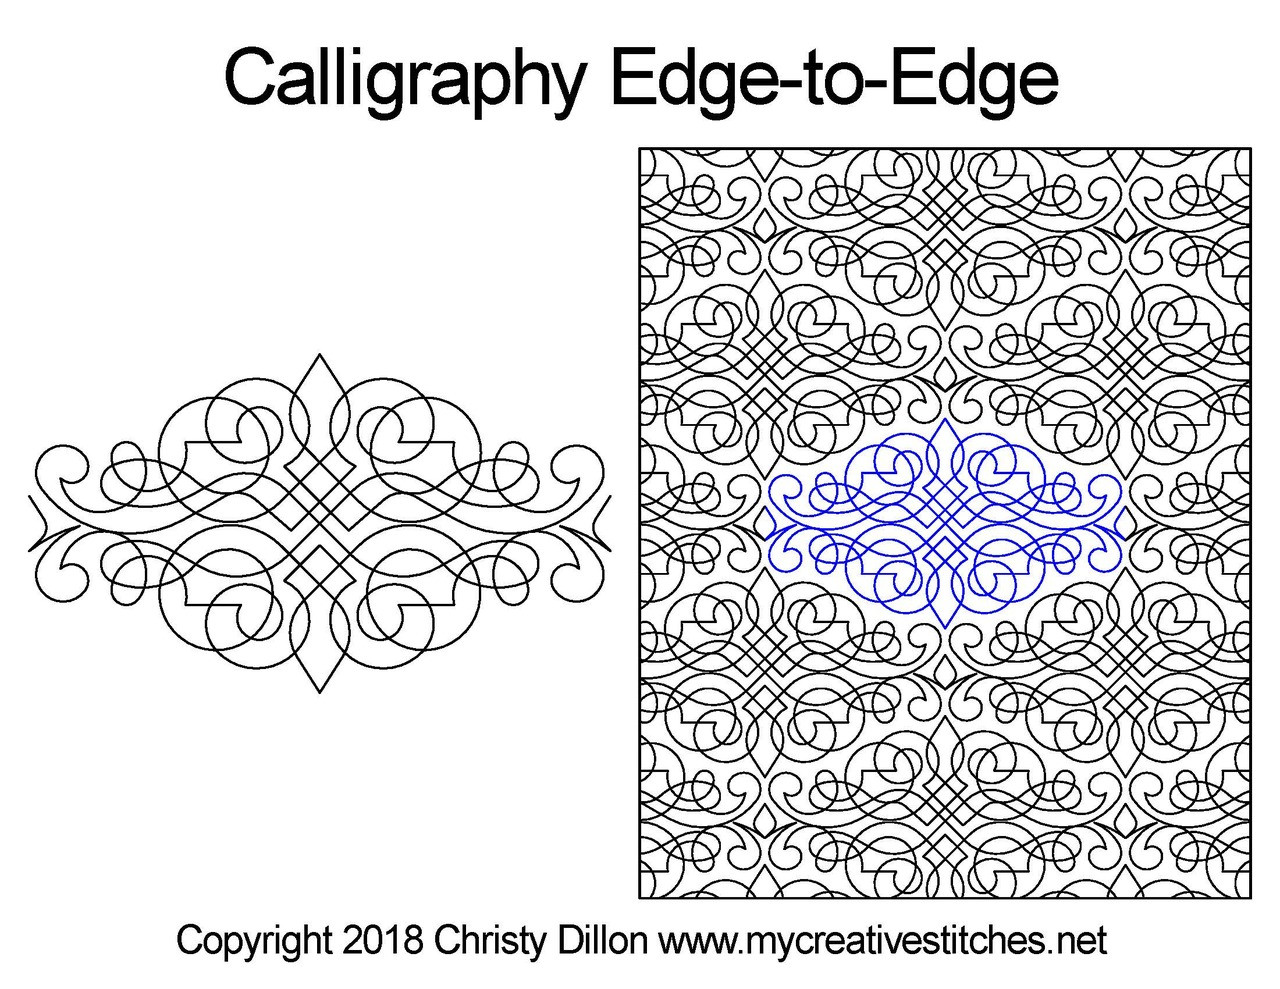 Computerized Quilting Pattern Calligraphy Edge-to-Edge